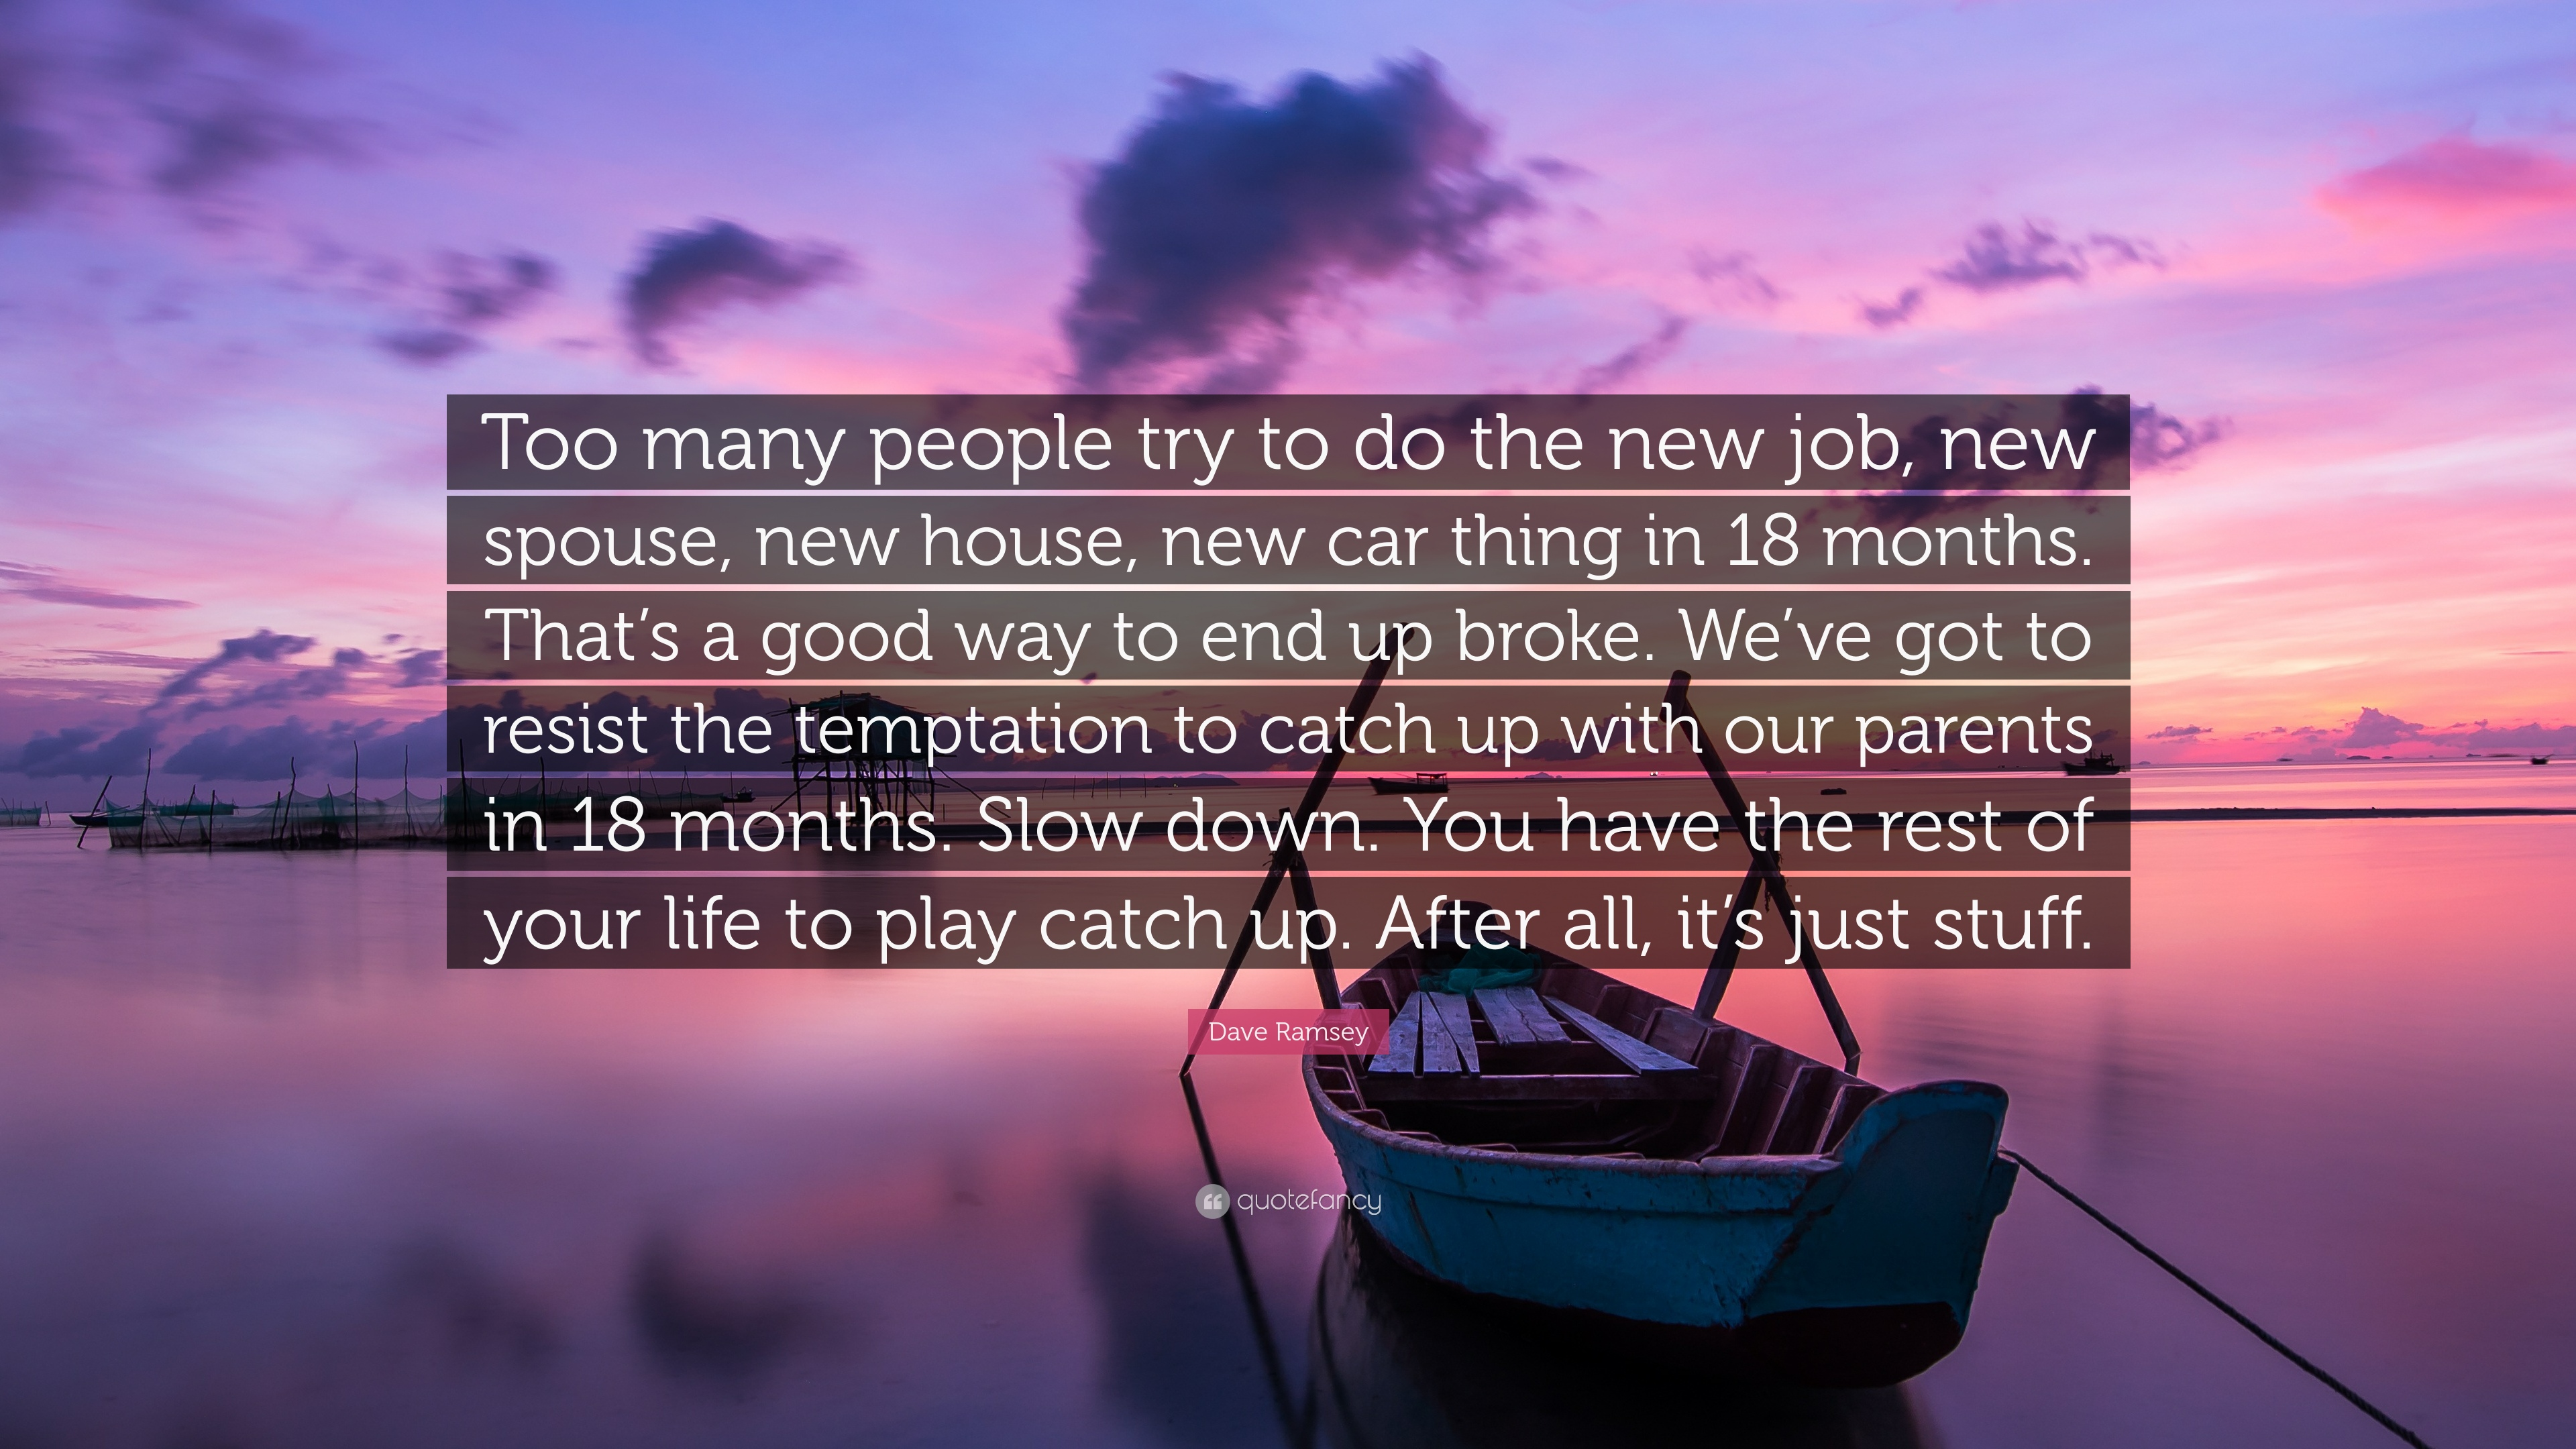 dave ramsey quote too many people try to do the new job new dave ramsey quote too many people try to do the new job new